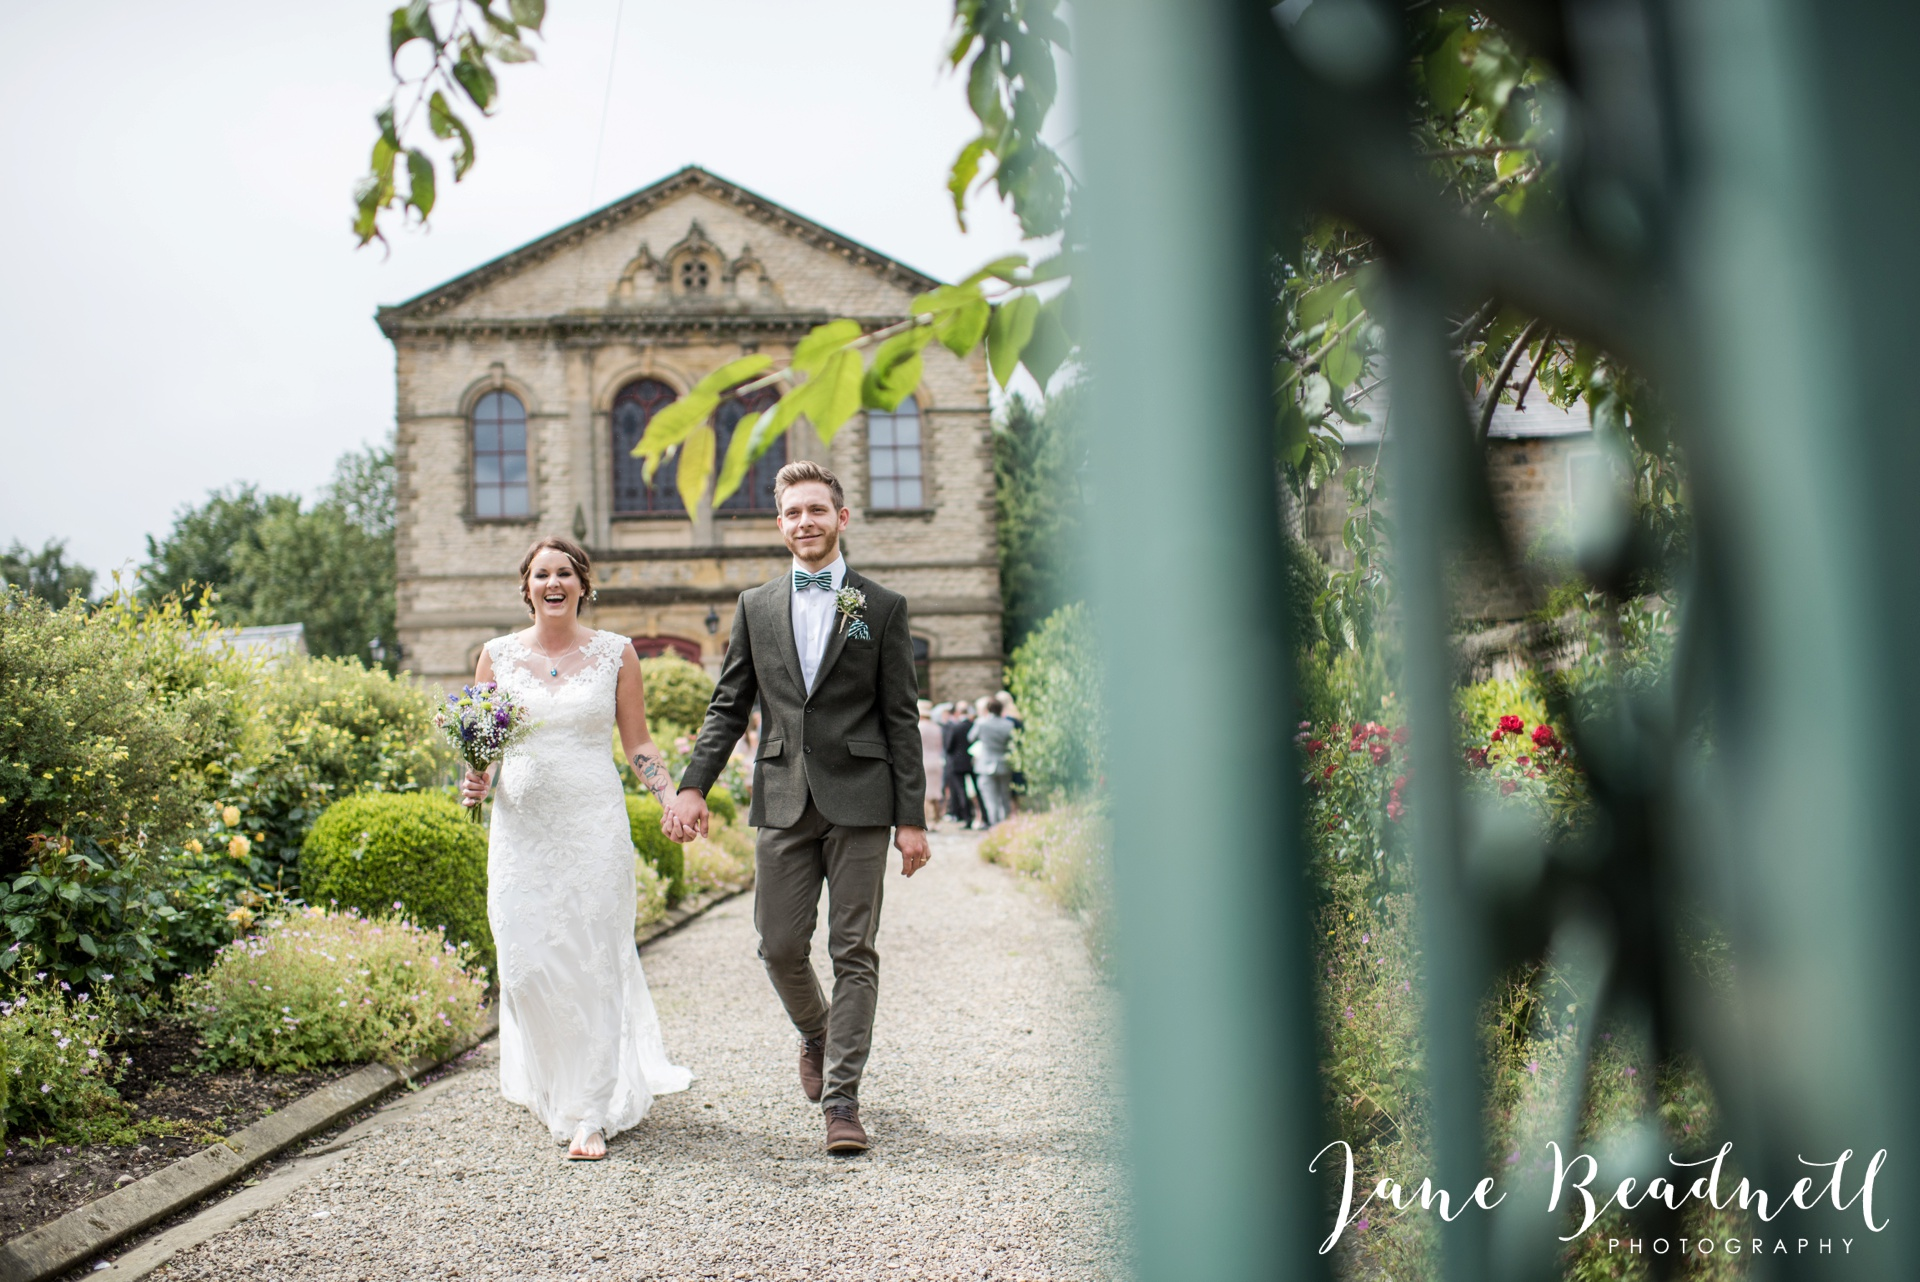 Jane Beadnell fine art wedding photographer The Old Deanery Ripon_0045